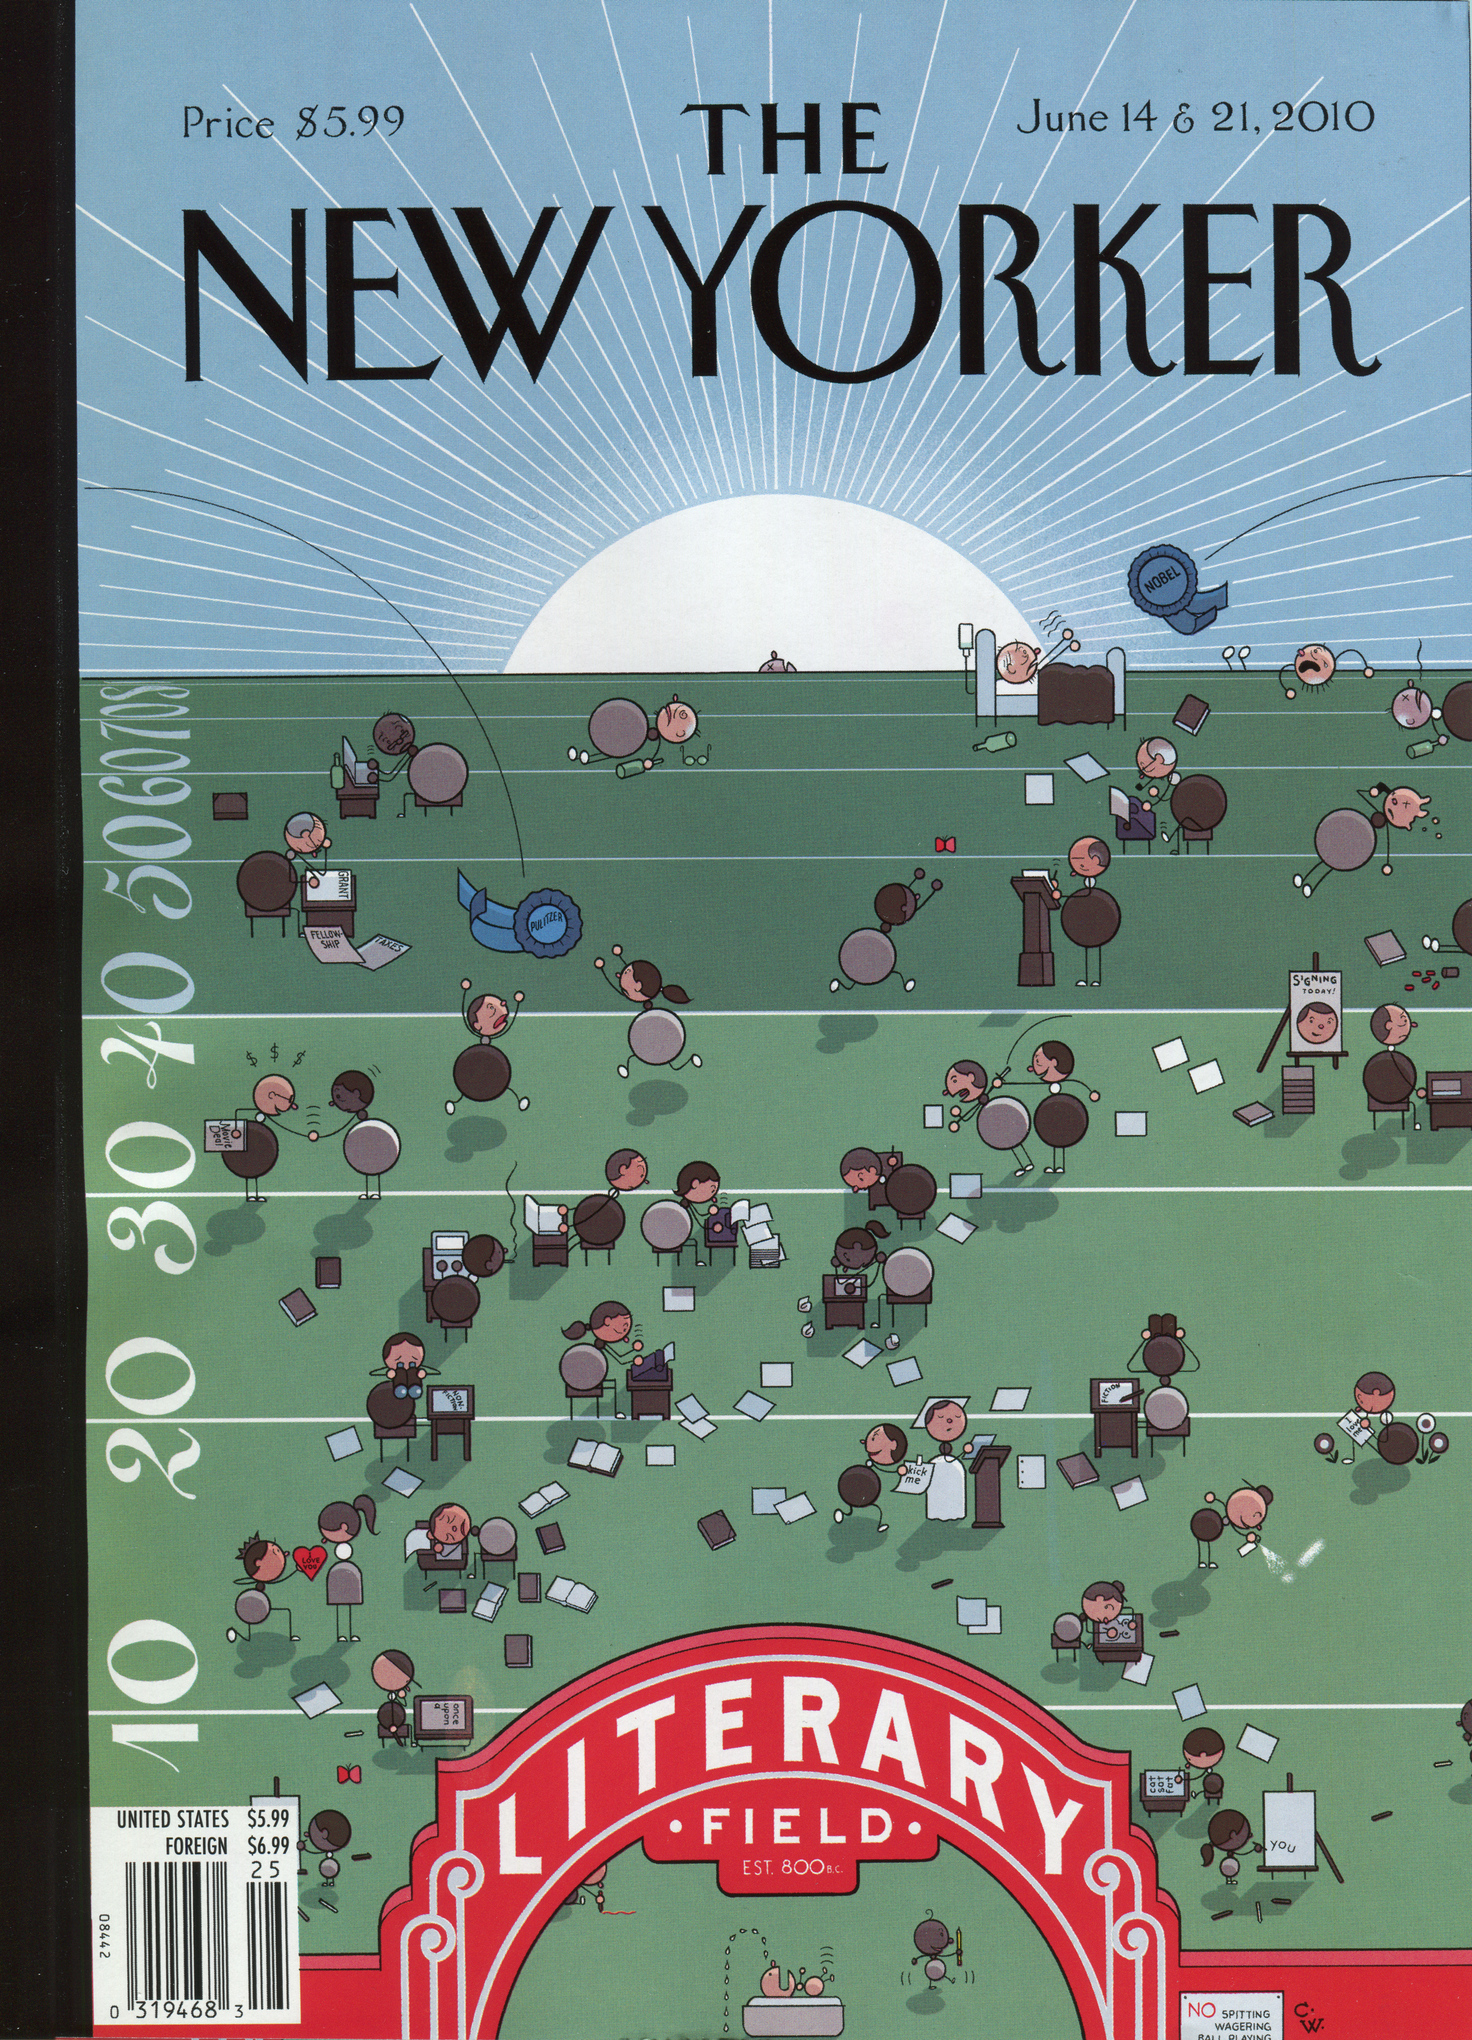 12 New Yorker education articles to read while the archives are free